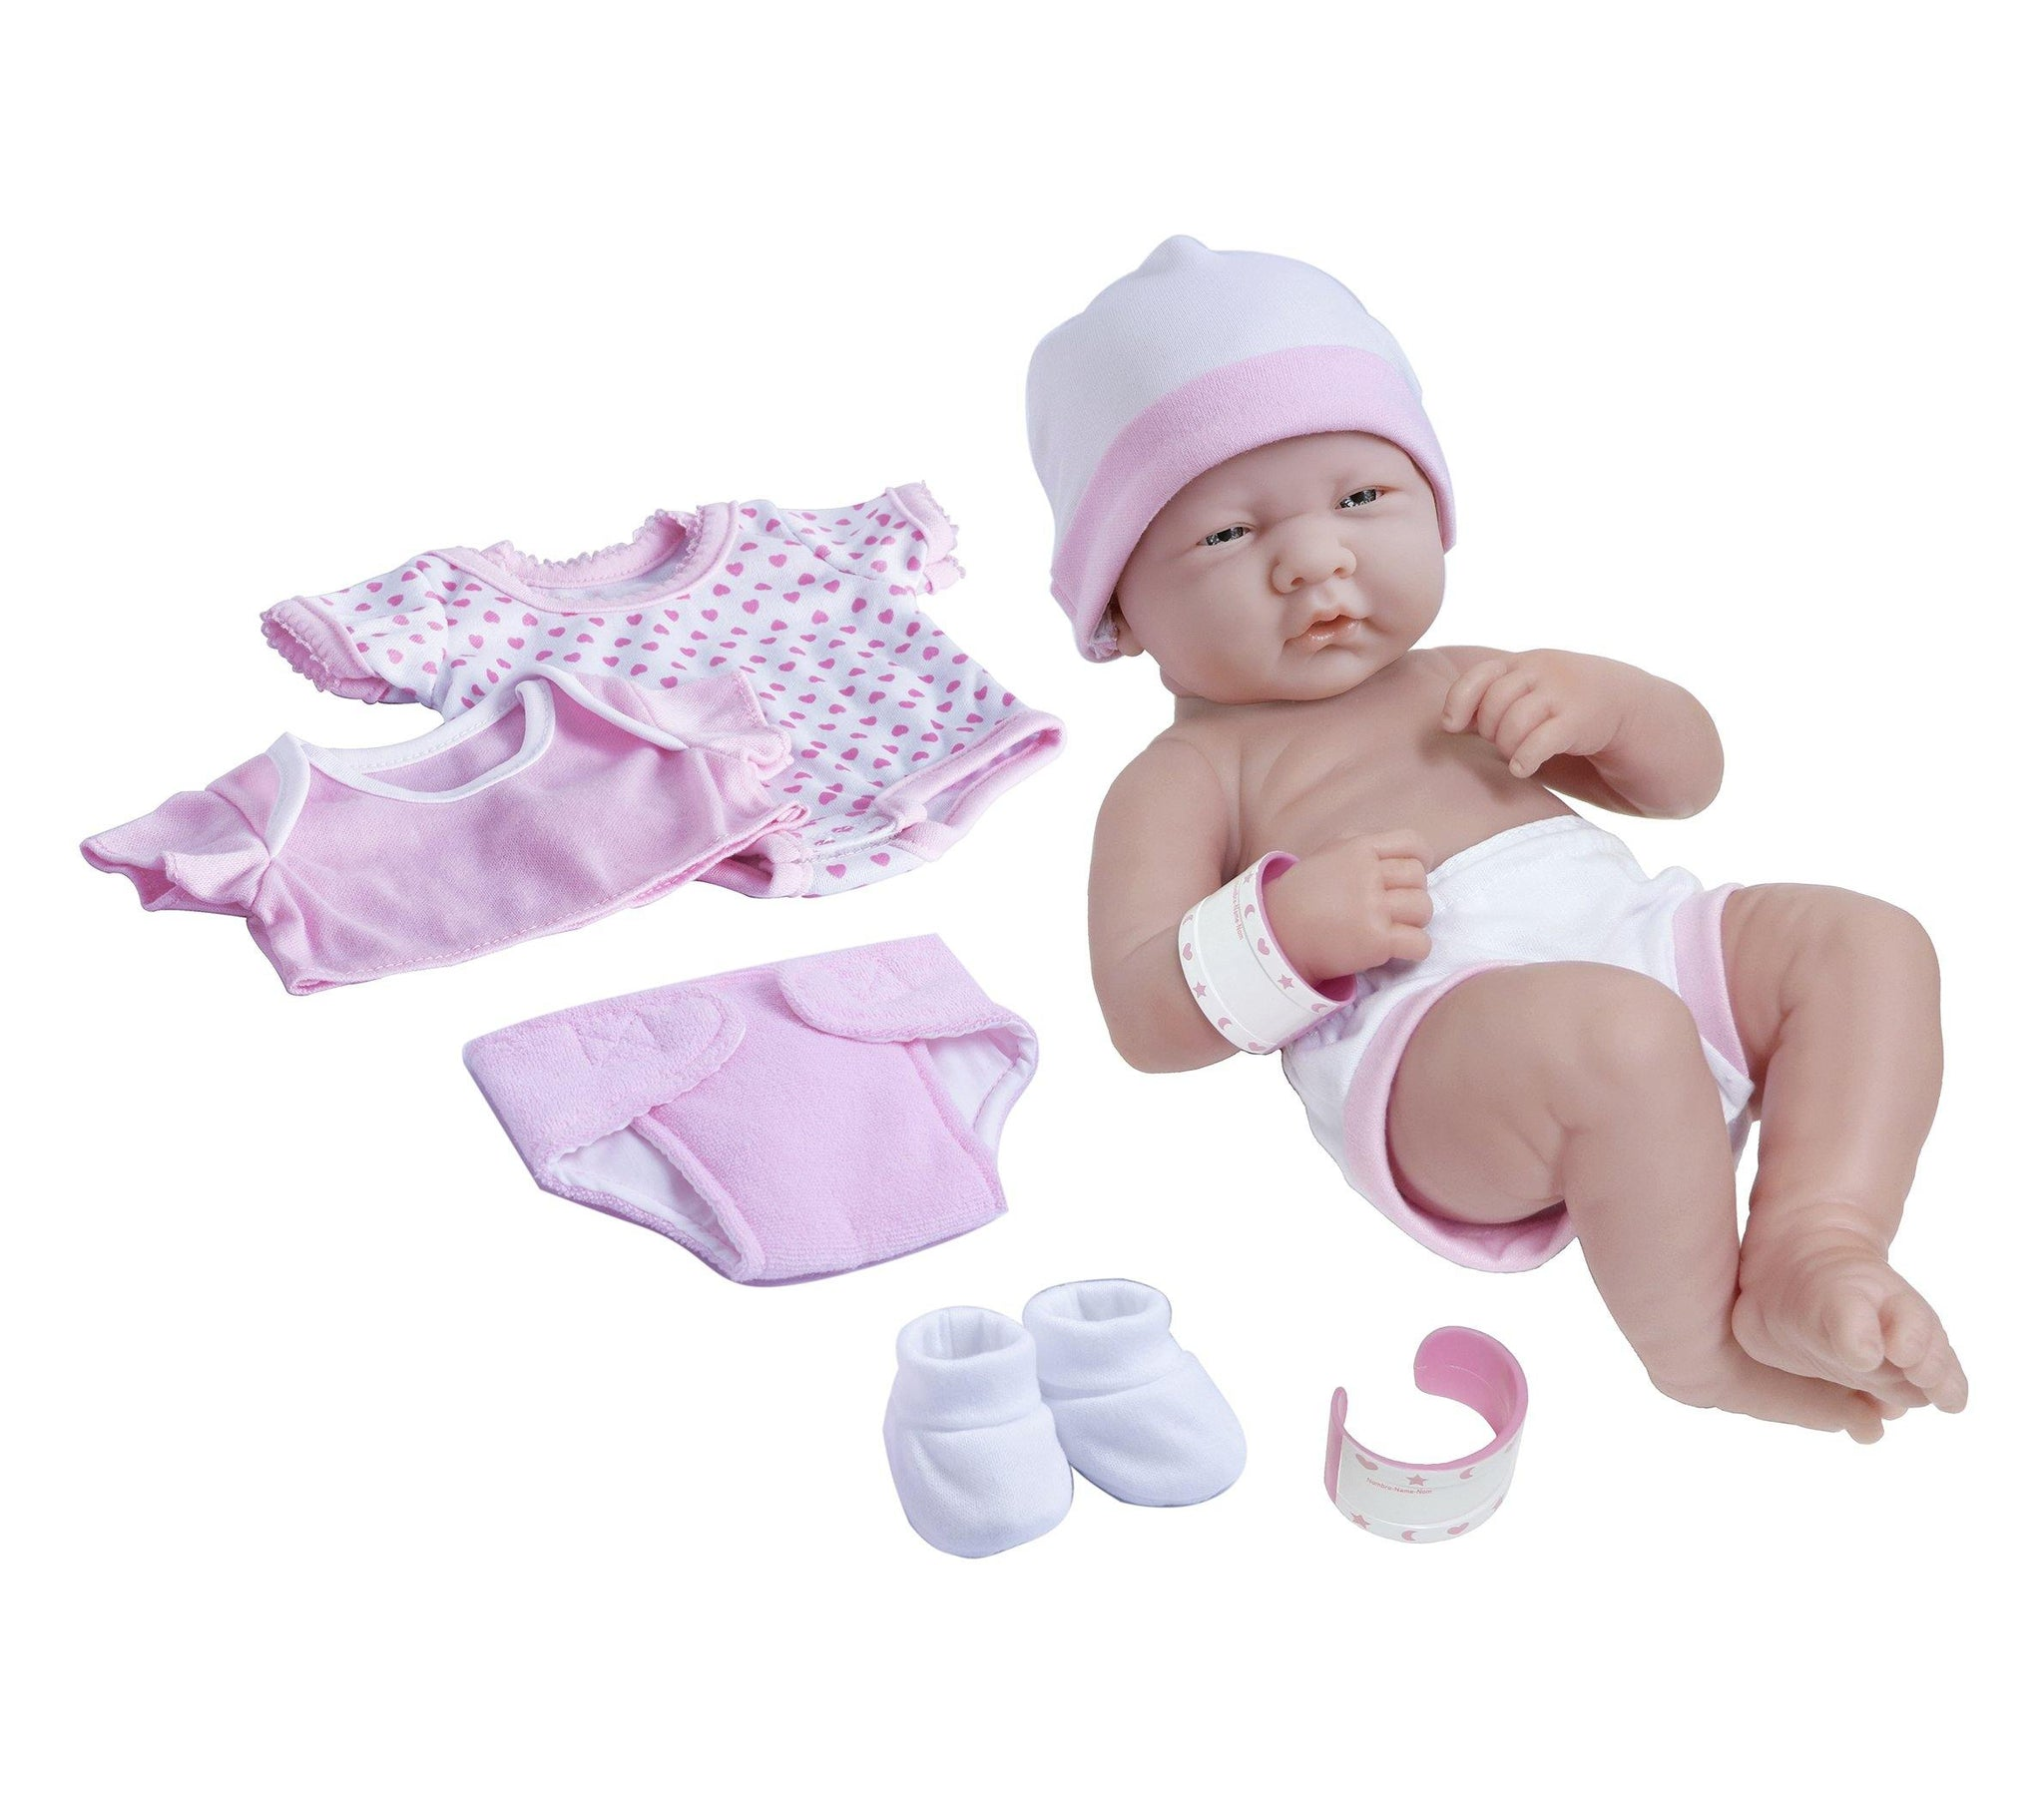 "La Newborn Nursery 8 Piece Pink Layette Baby Doll Gift Set, featuring 14"" Life-Like ""Open Mouth"" Newborn Doll"